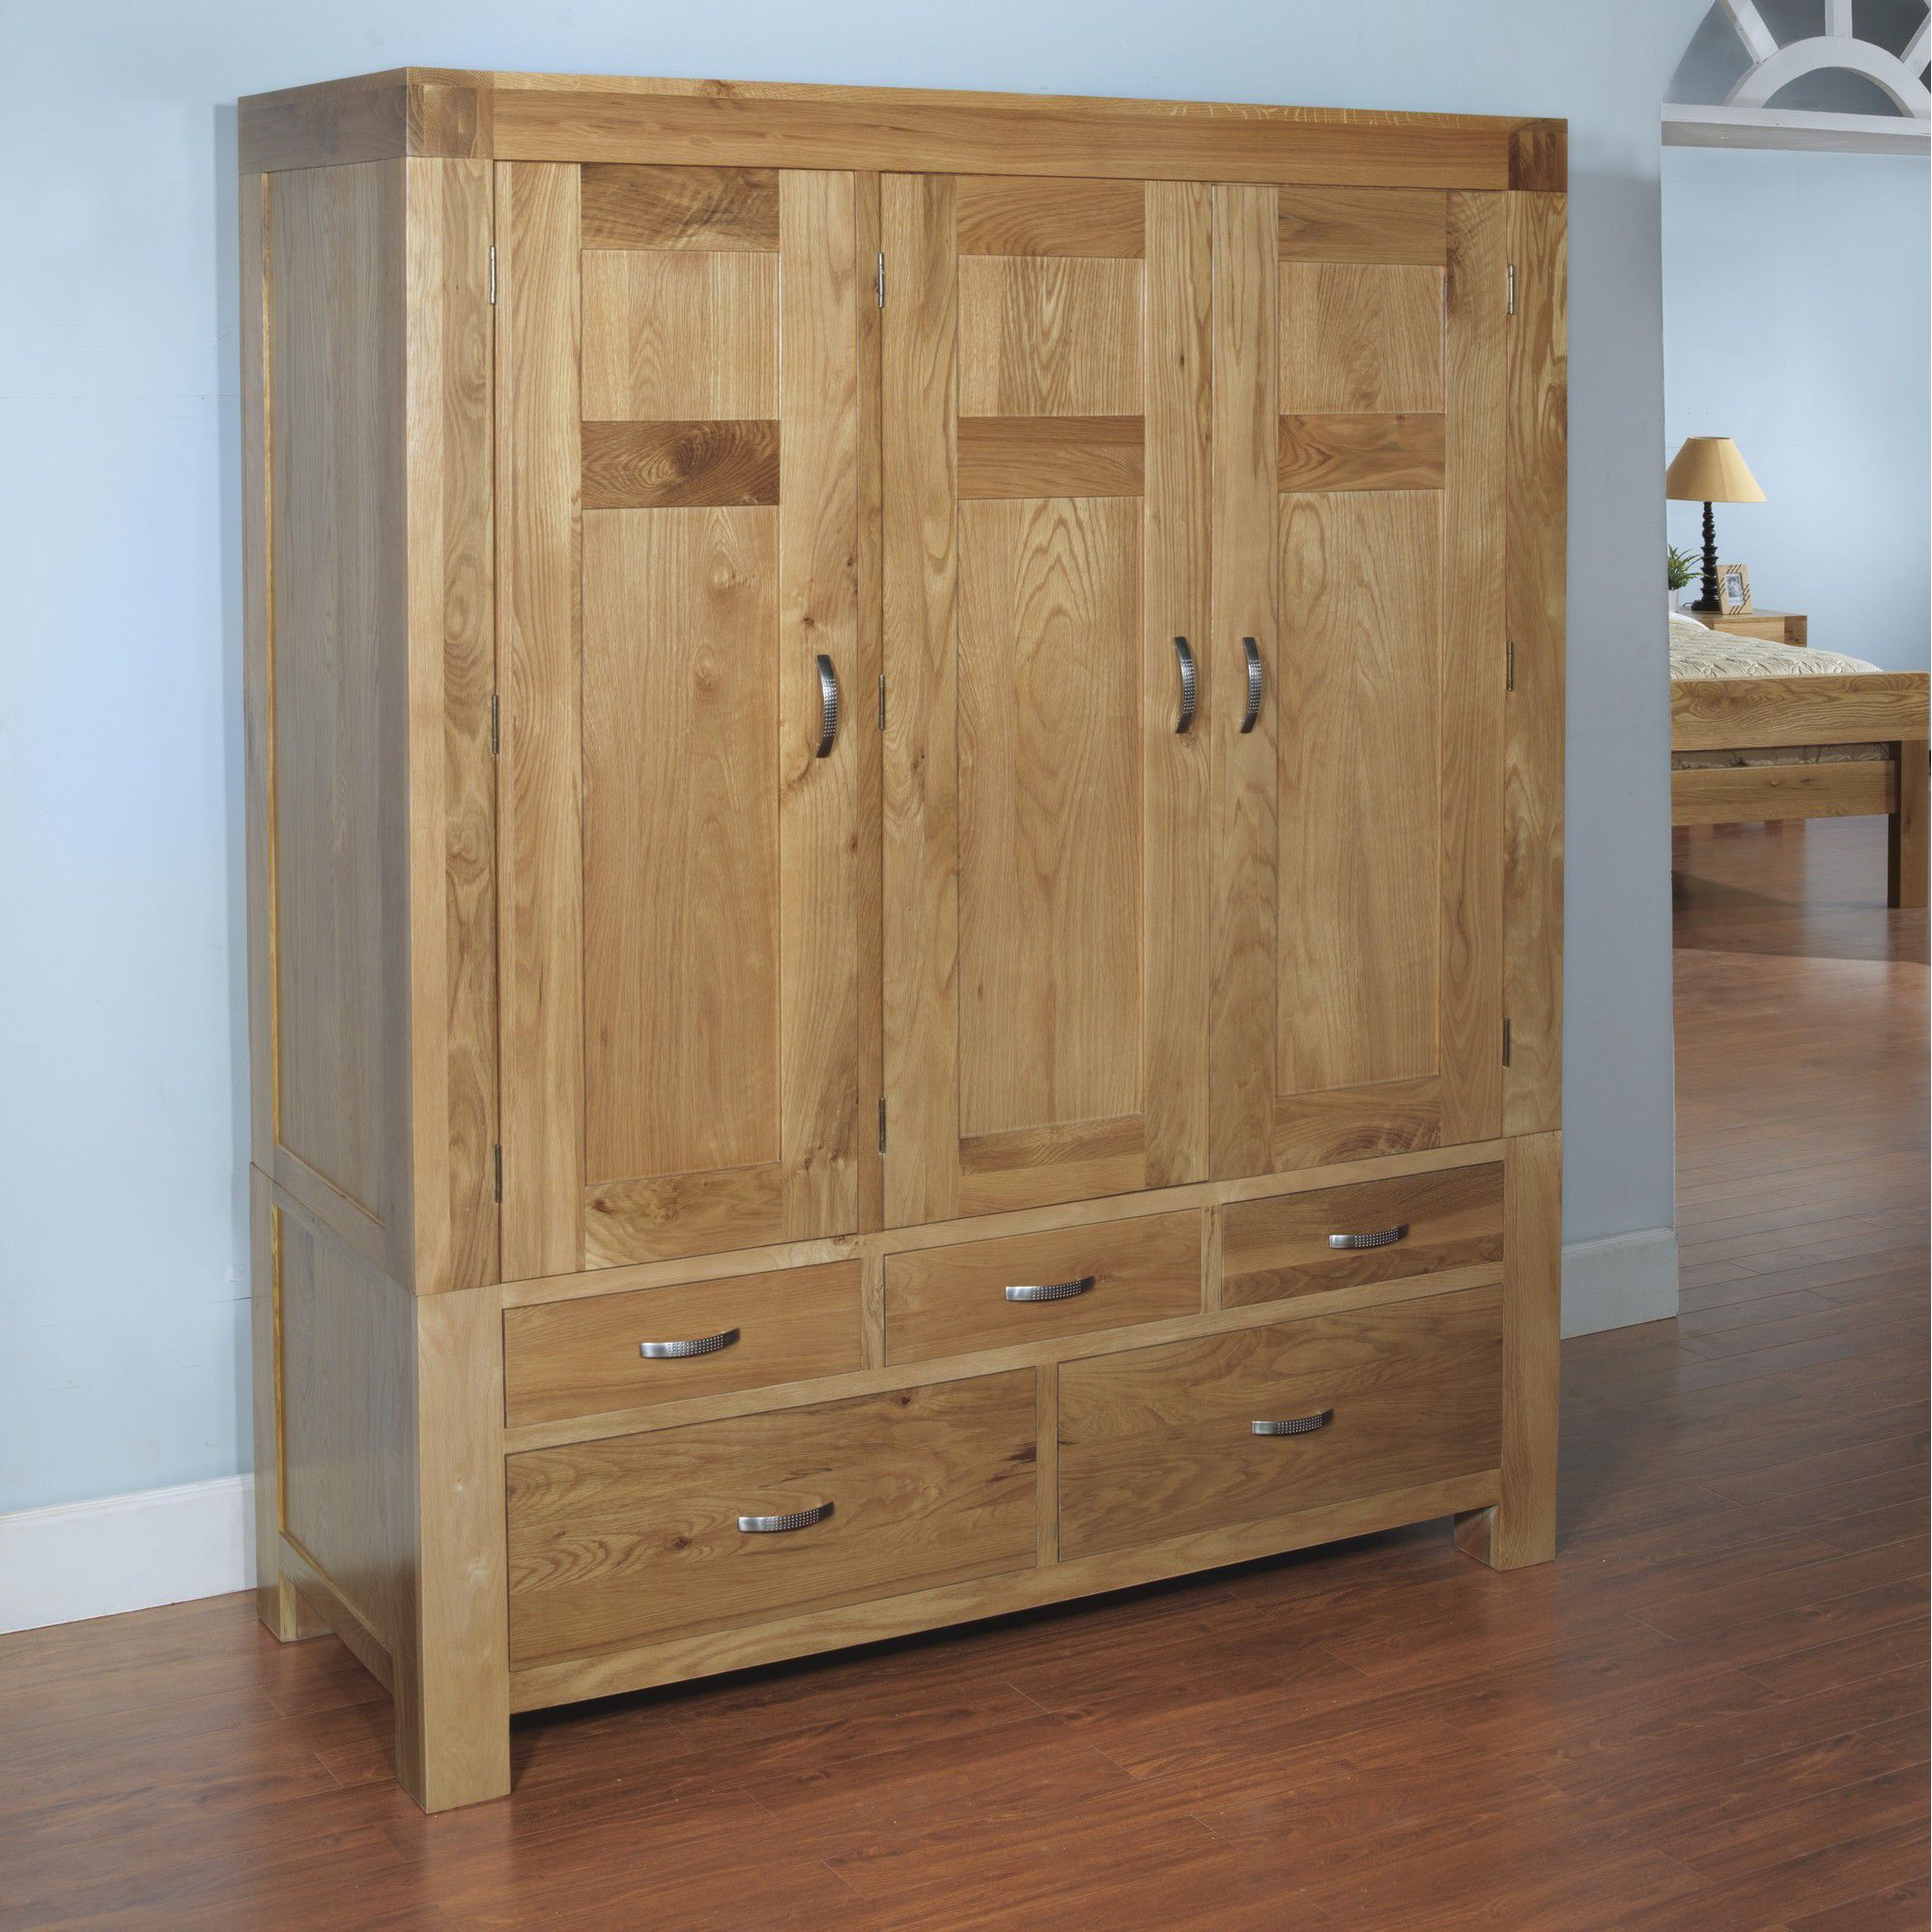 Hawkshead Rustic Oak Blonde Triple Wardrobe at Tesco Direct